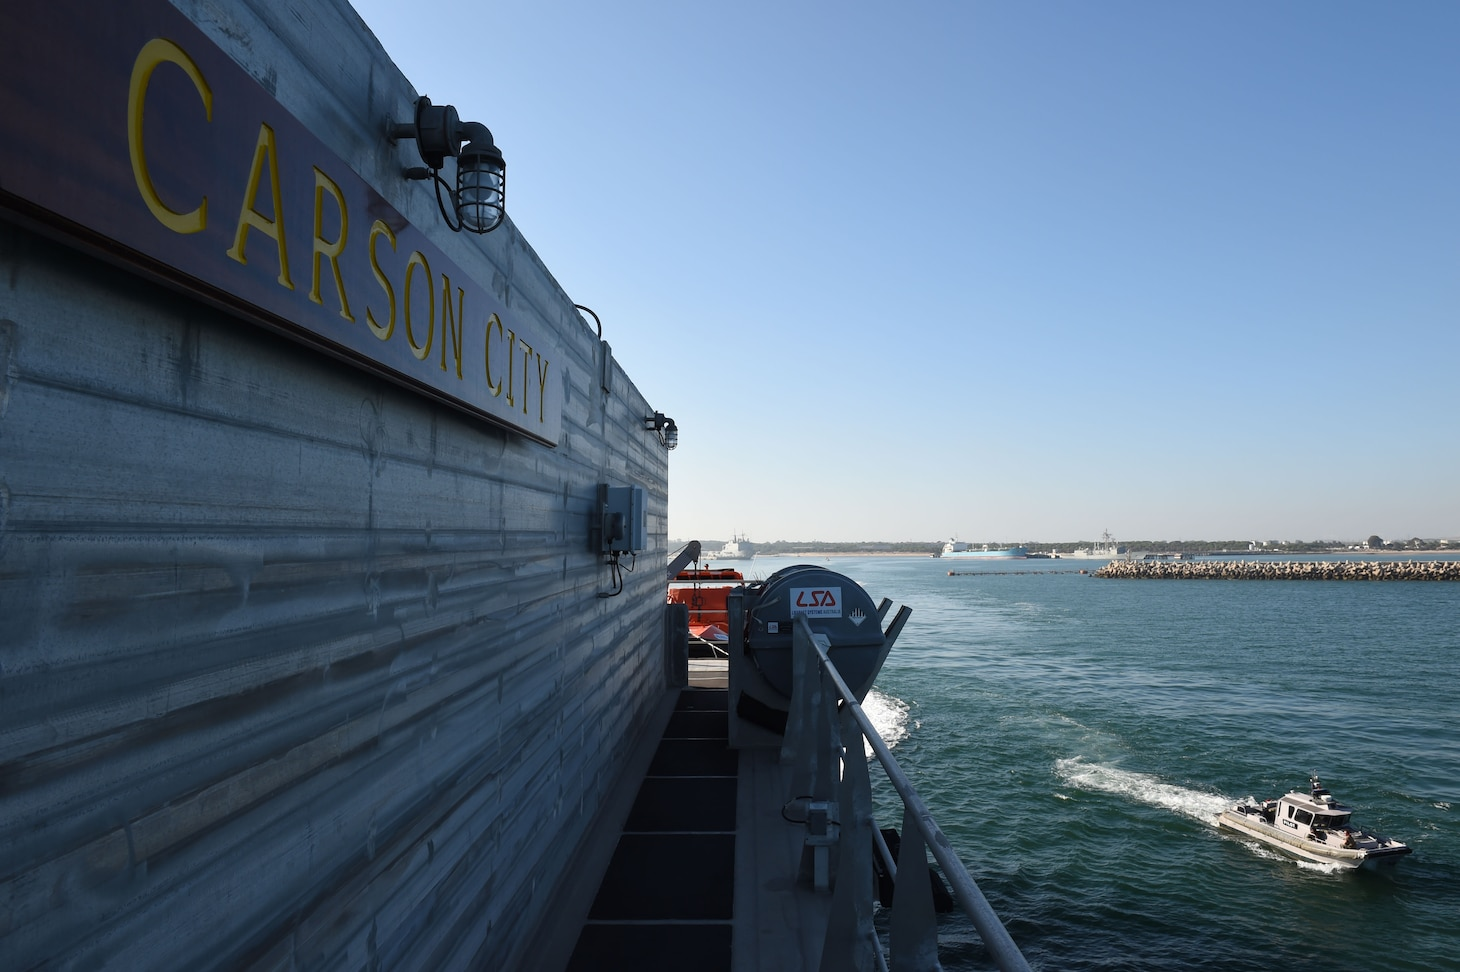 USNS Carson City departs Naval Station Rota, Spain for a 2019 Africa Partnership Station deployment, July 2, 2019.